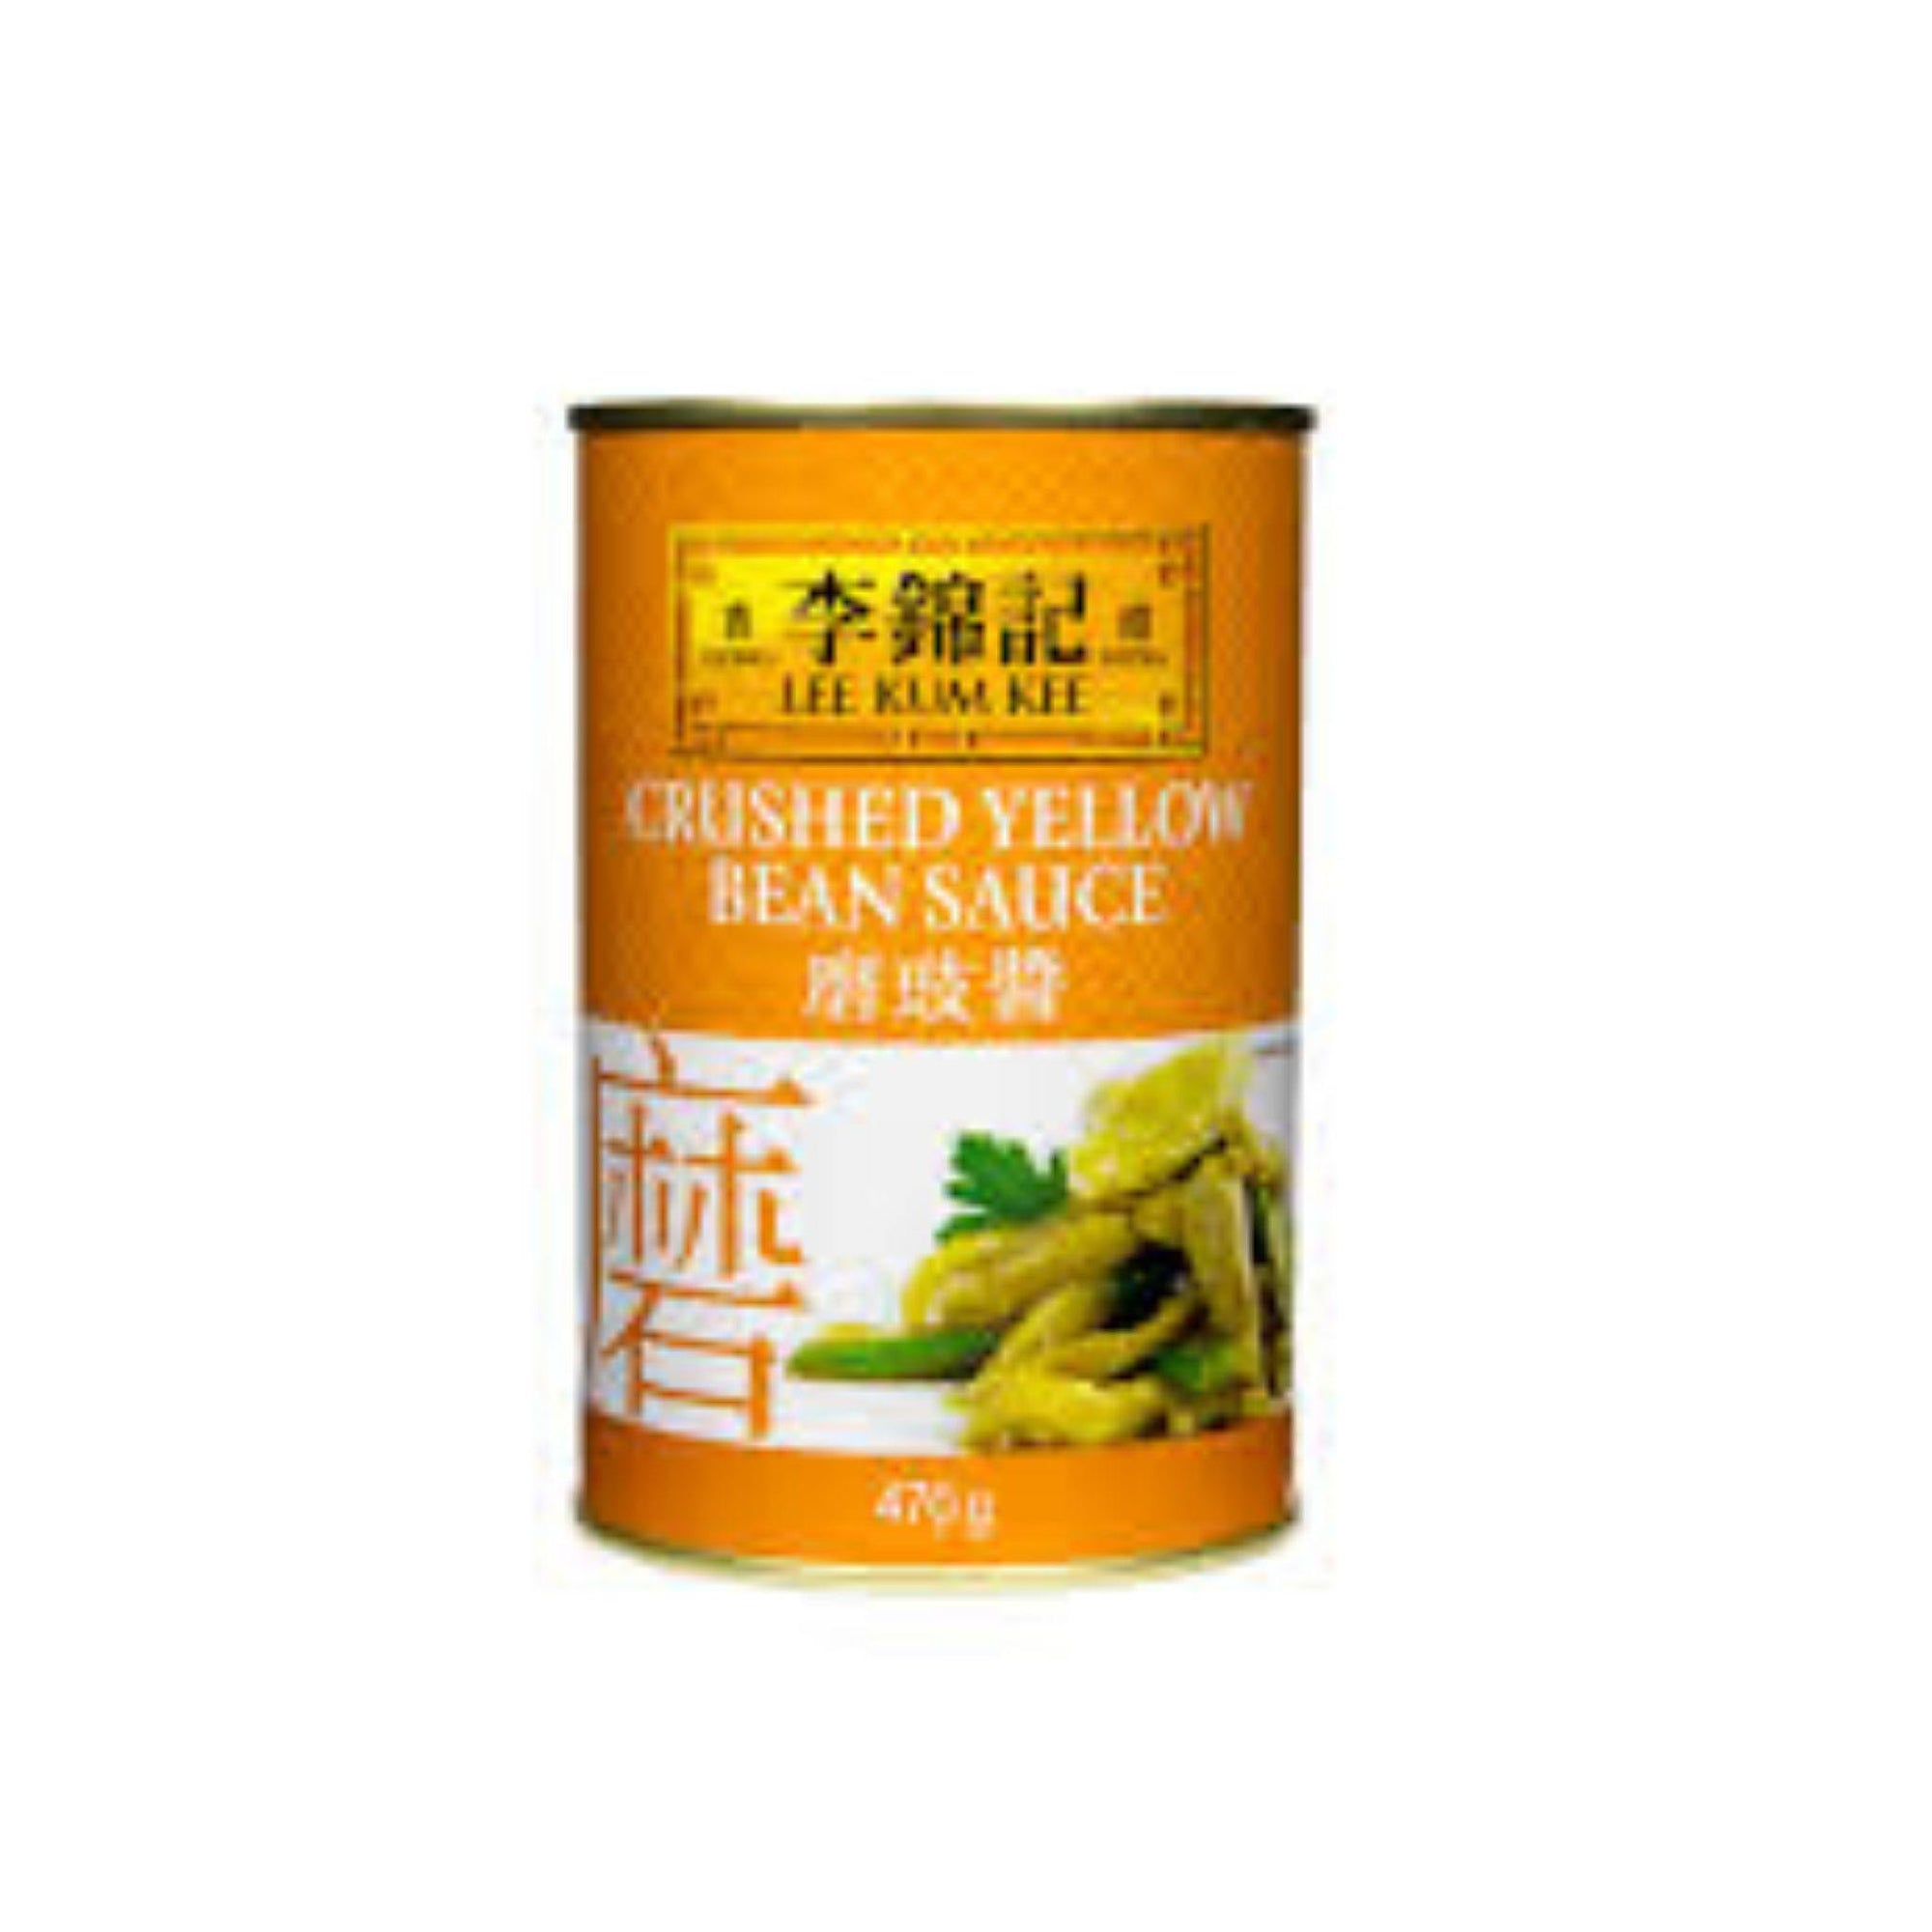 LKK Yellow Bean Sauce 470G - Asian Harvest